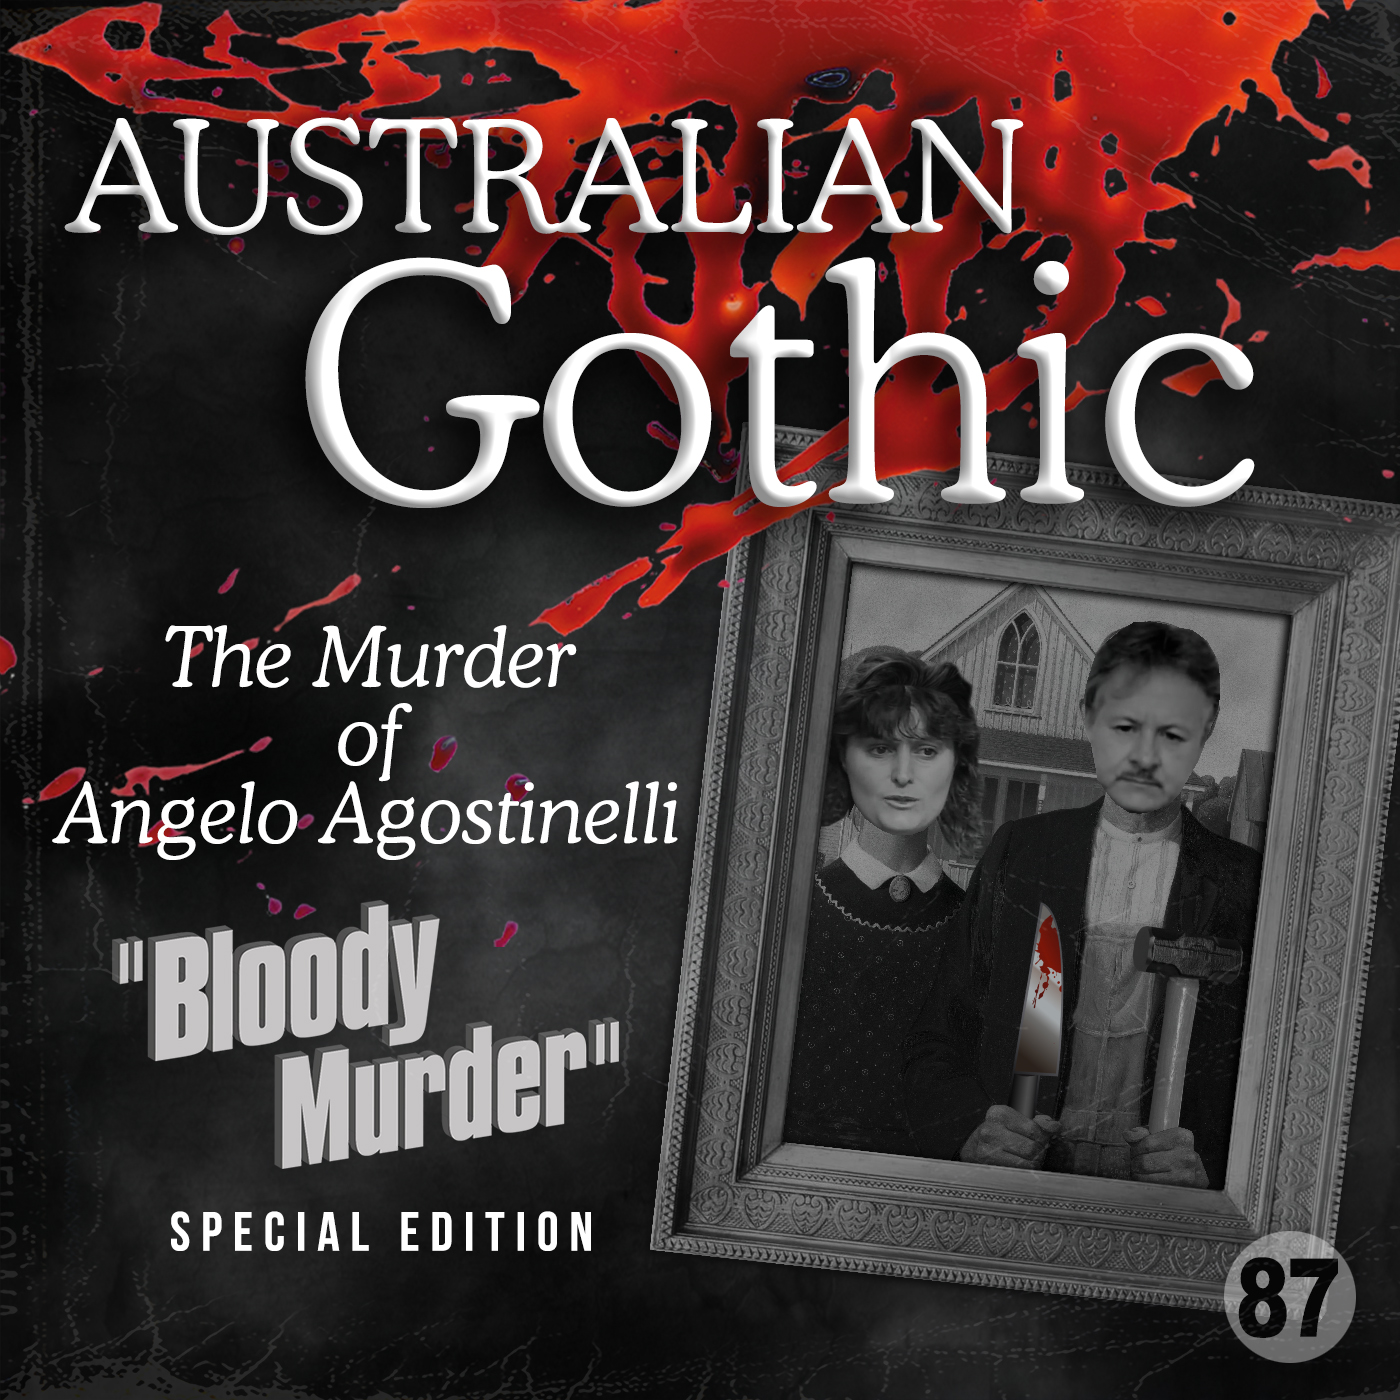 87 - Australian Gothic - The Murder of Angelo Agostinelli